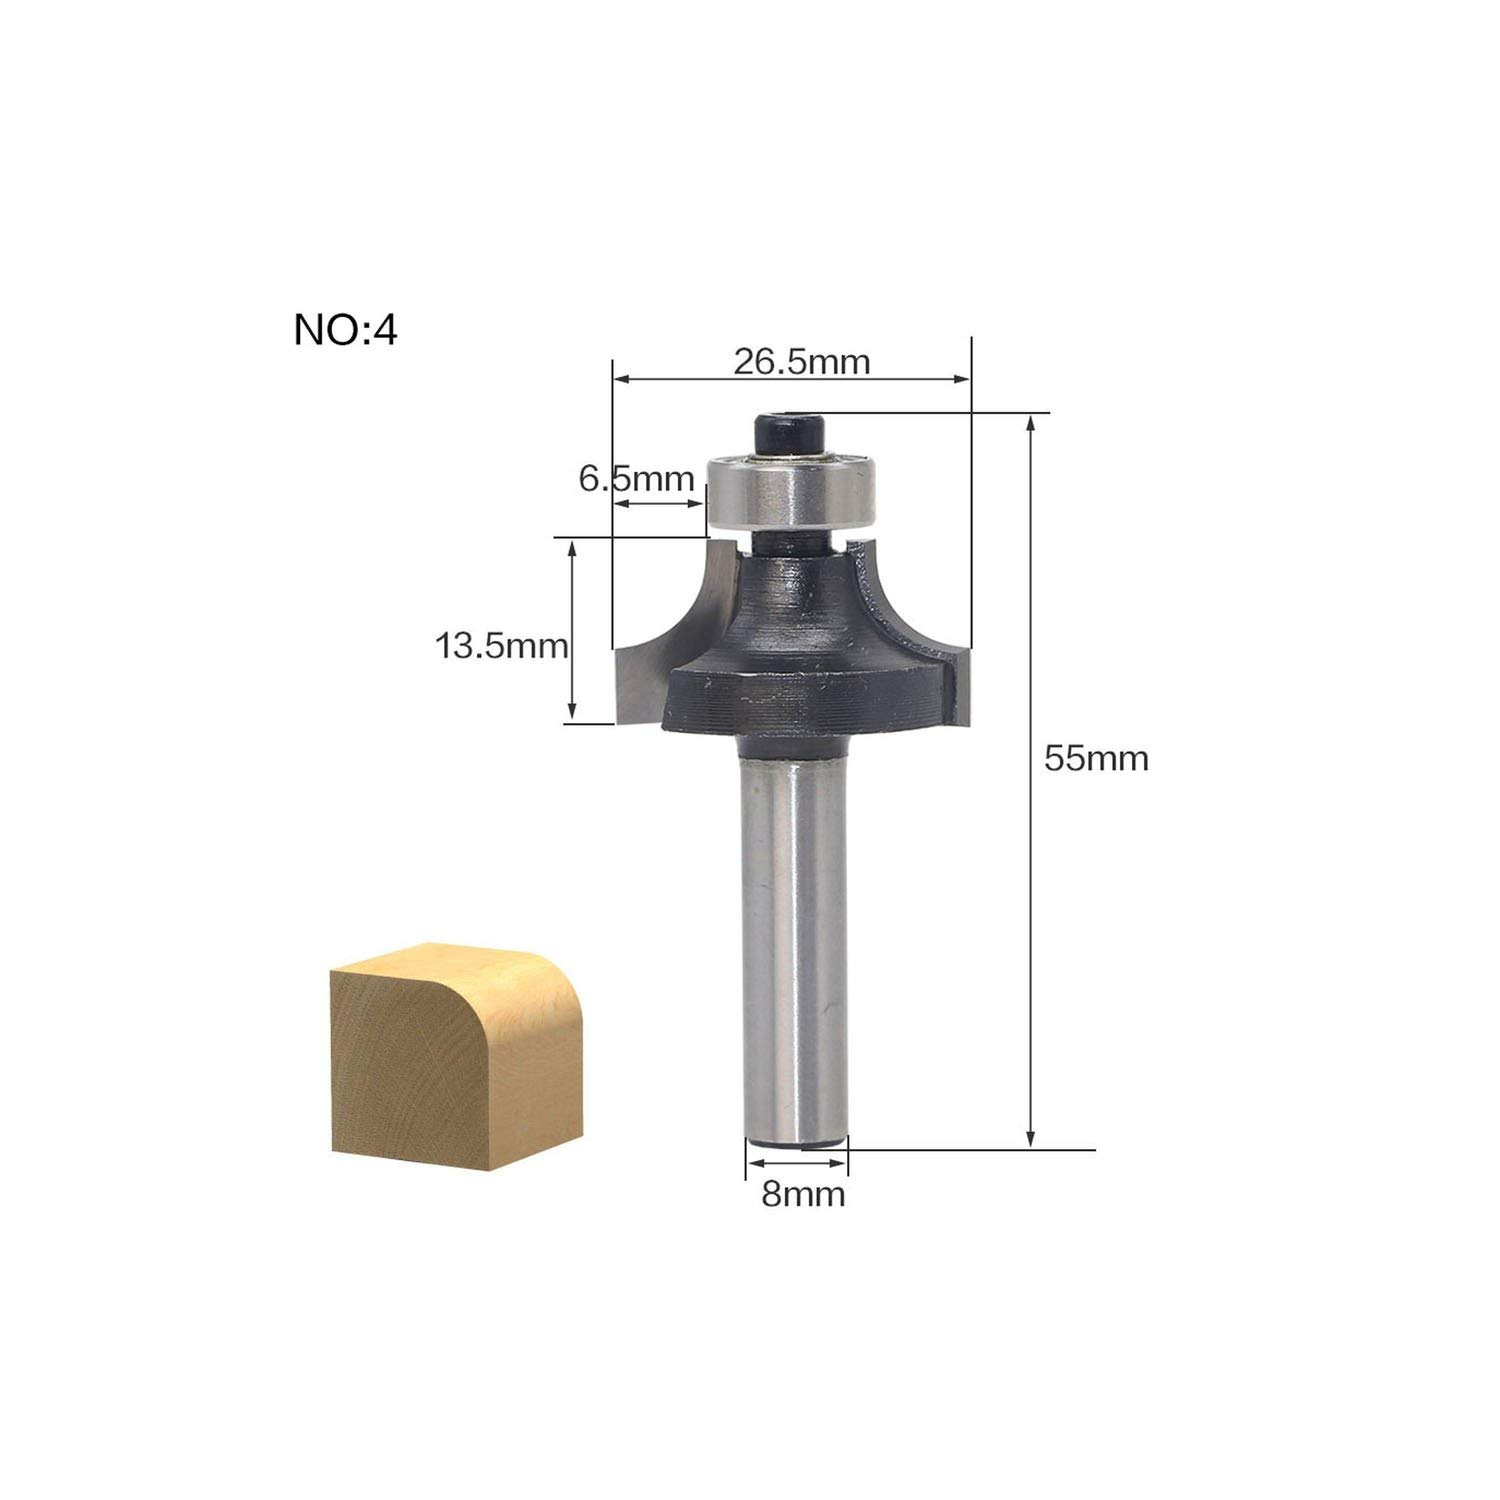 1Pcs 8mm Shank Wood Router Bit Straight End Mill Trimmer Cleaning Flush Trim Corner Round Cove Box Bits Tools Milling Cutter,No1